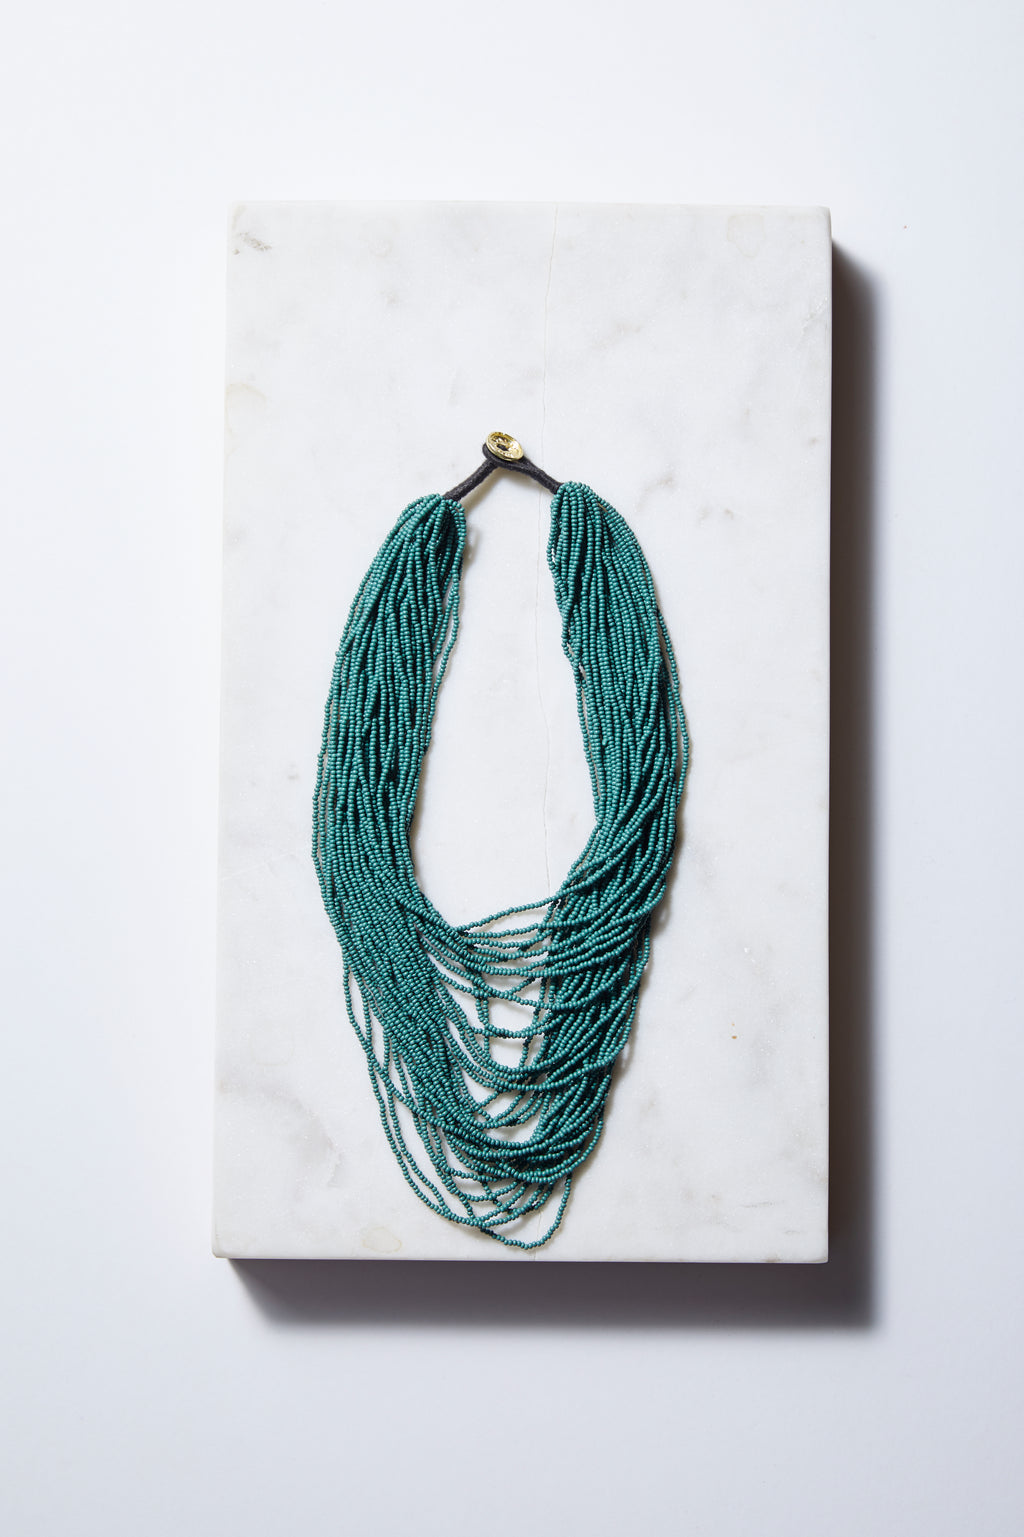 Teal Multi-layer Seed Beads Necklace - P I C N I C